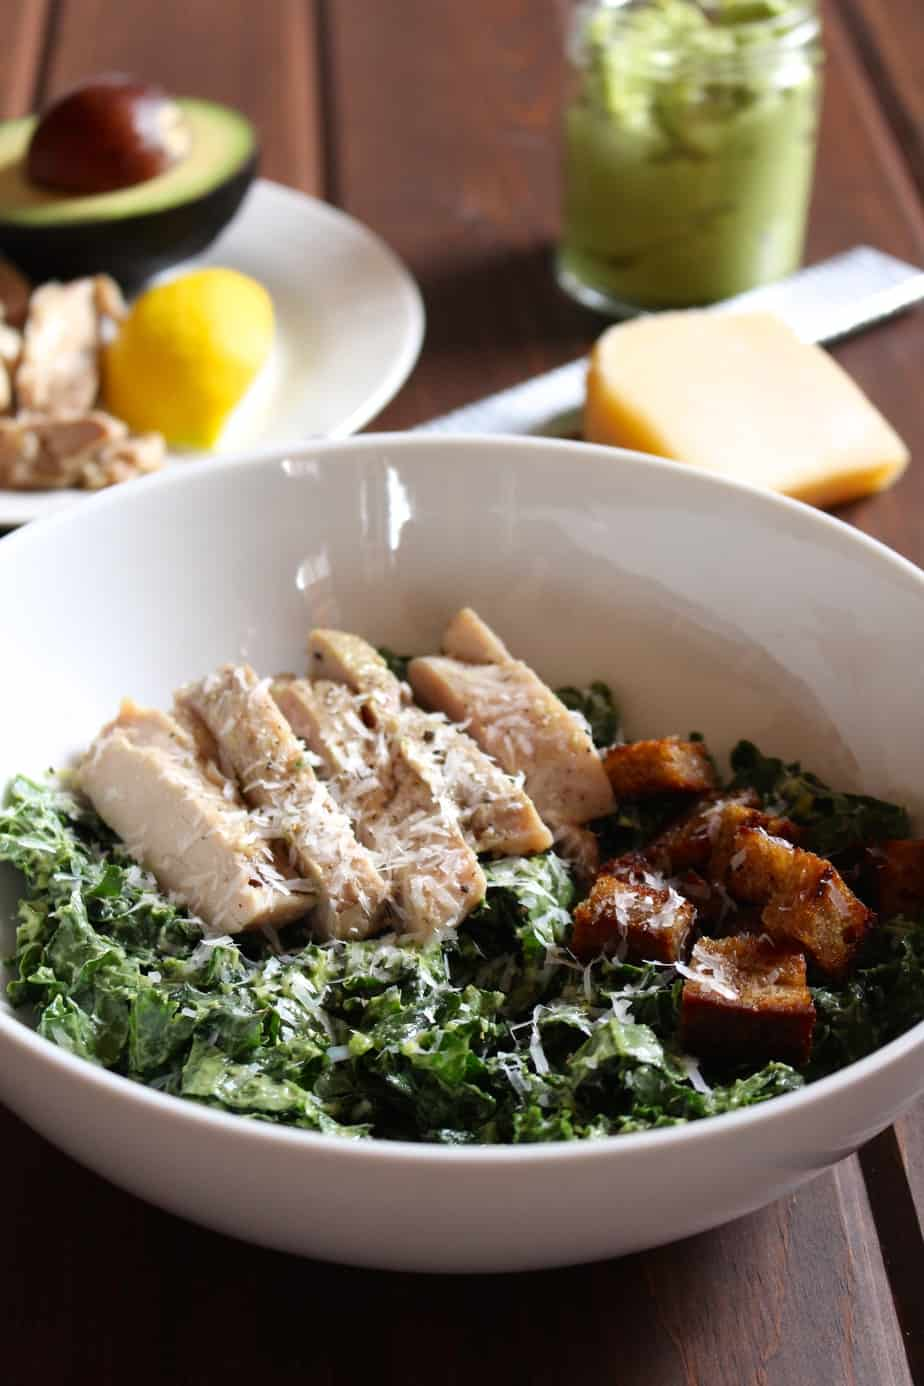 Chicken Kale Salad with Avocado Caesar and Homemade Croutons | Frugal Nutrition